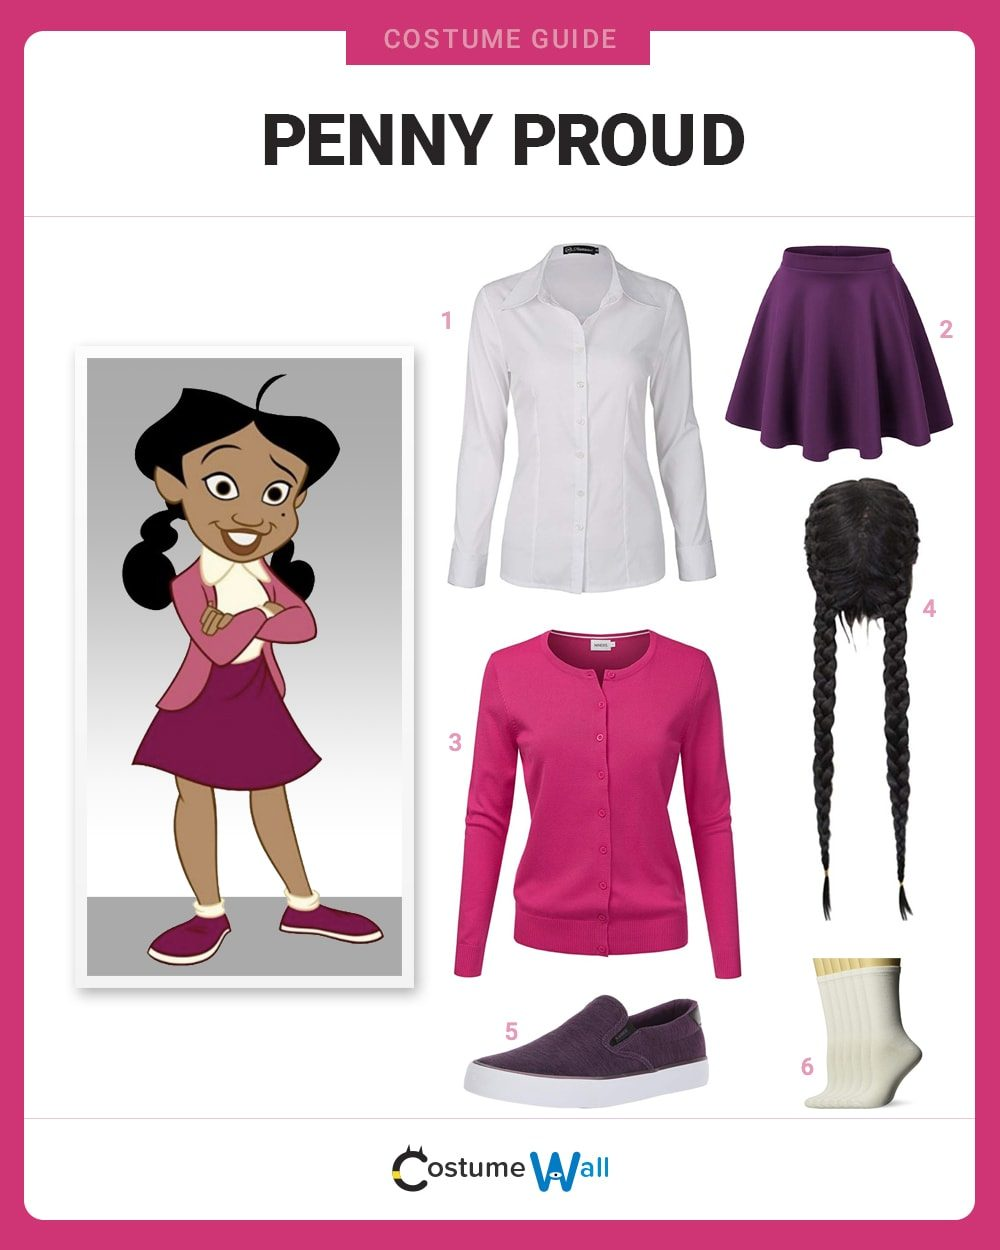 Penny Proud Costume Guide